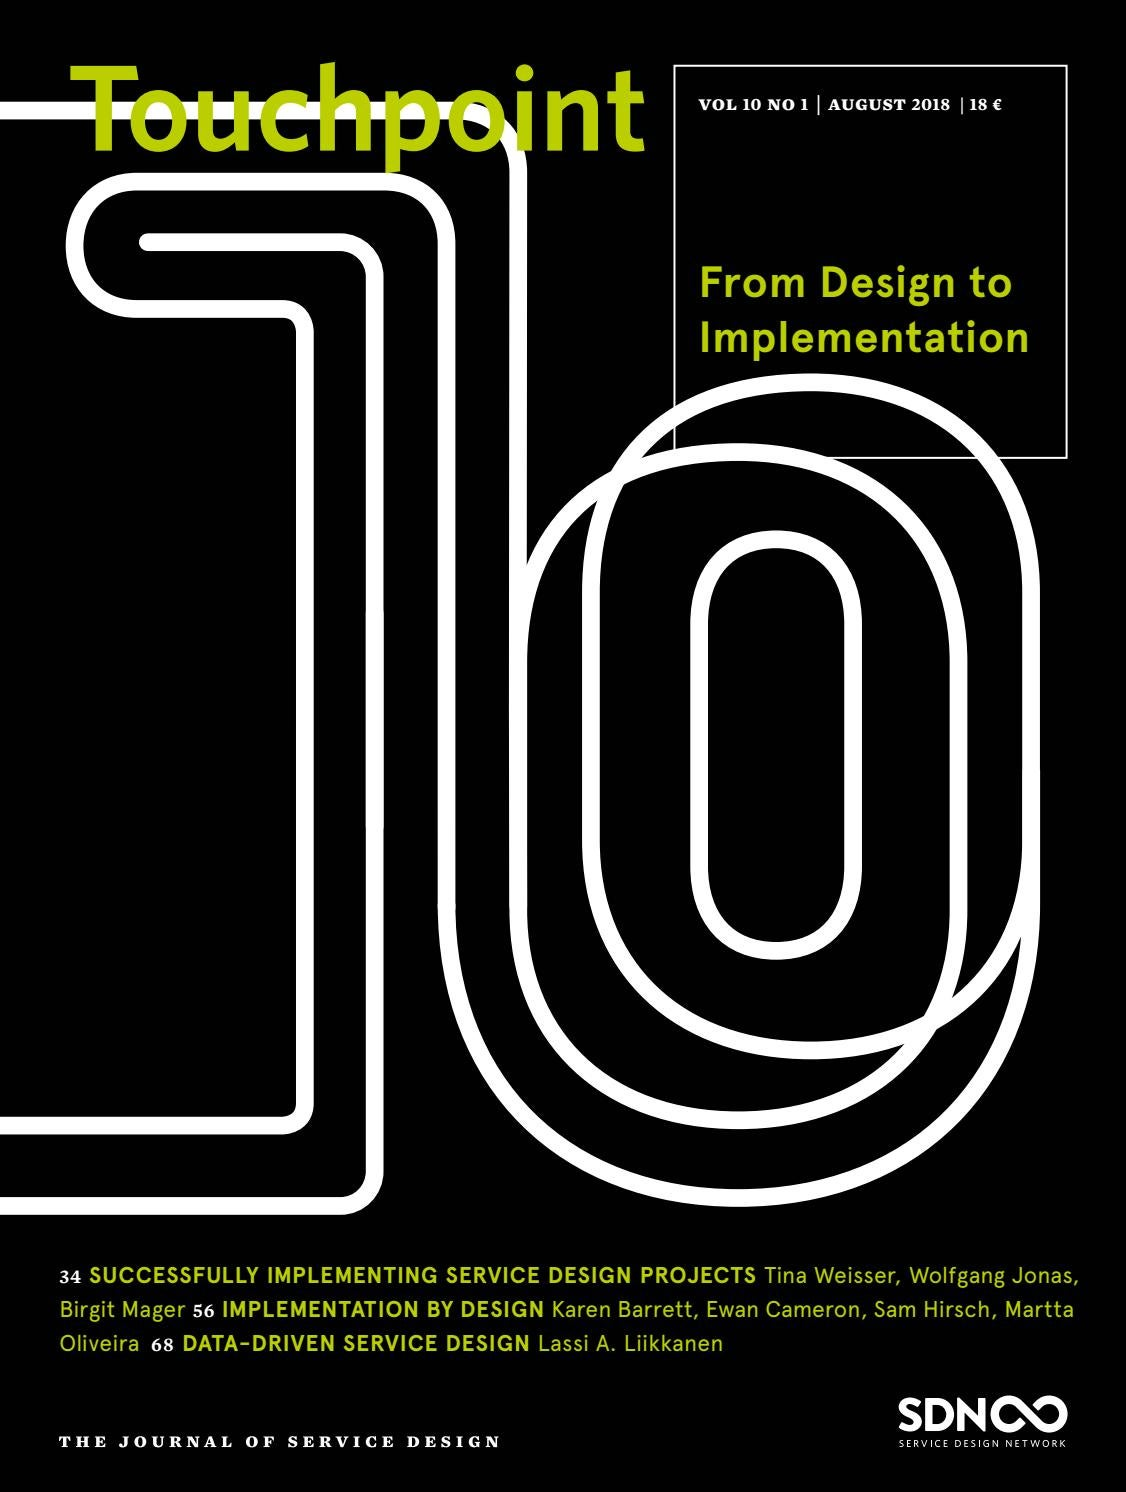 Touchpoint Vol 10 No 1 From Design To Implementation By Service Design Network Issuu